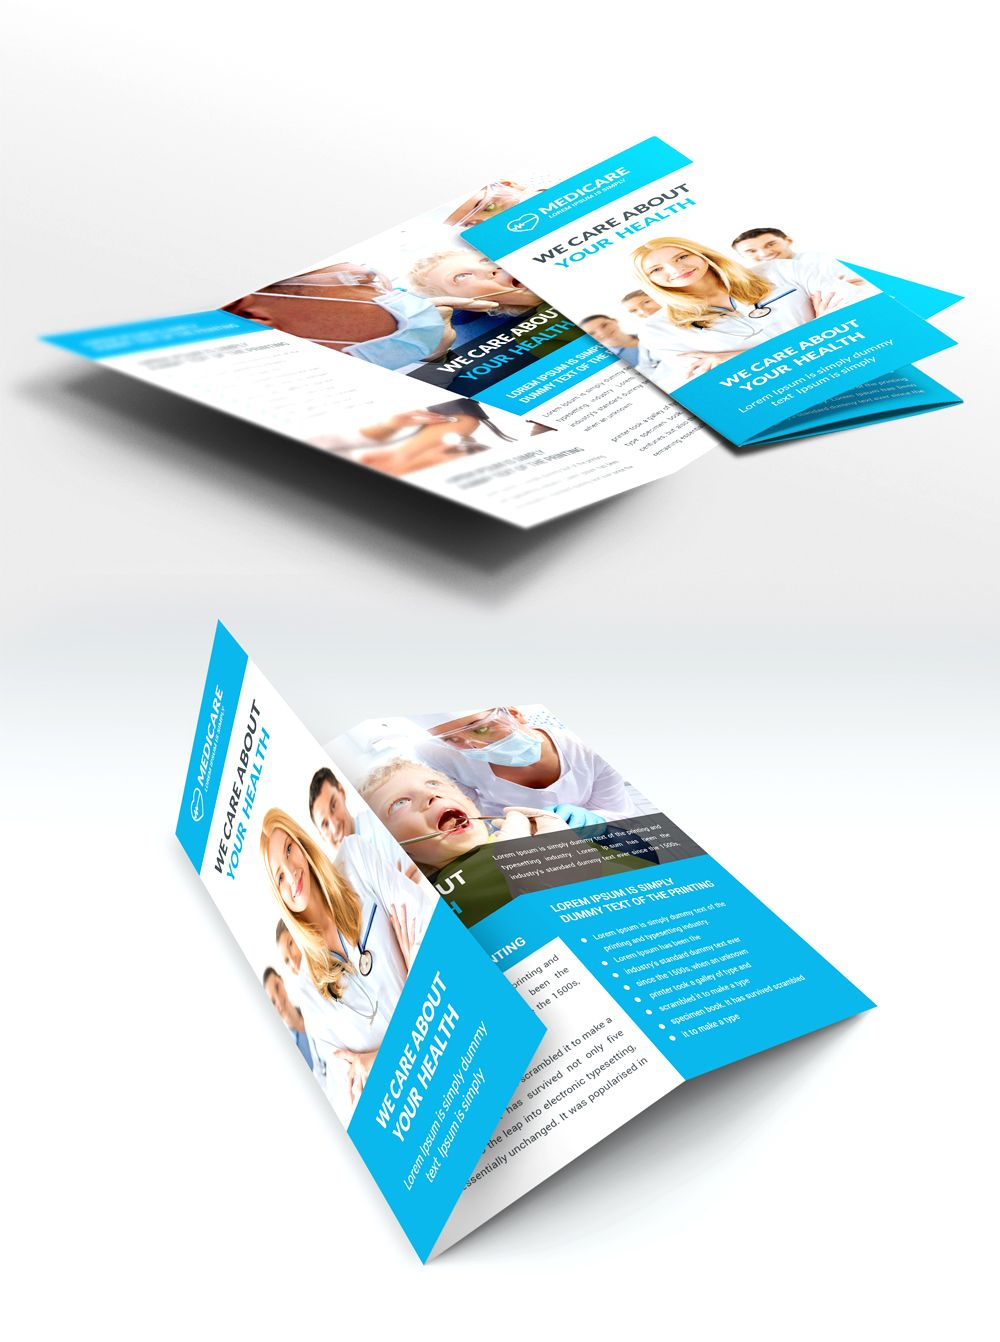 Medical Care And Hospital Trifold Brochure Template Free PSD - Trifold brochure template psd